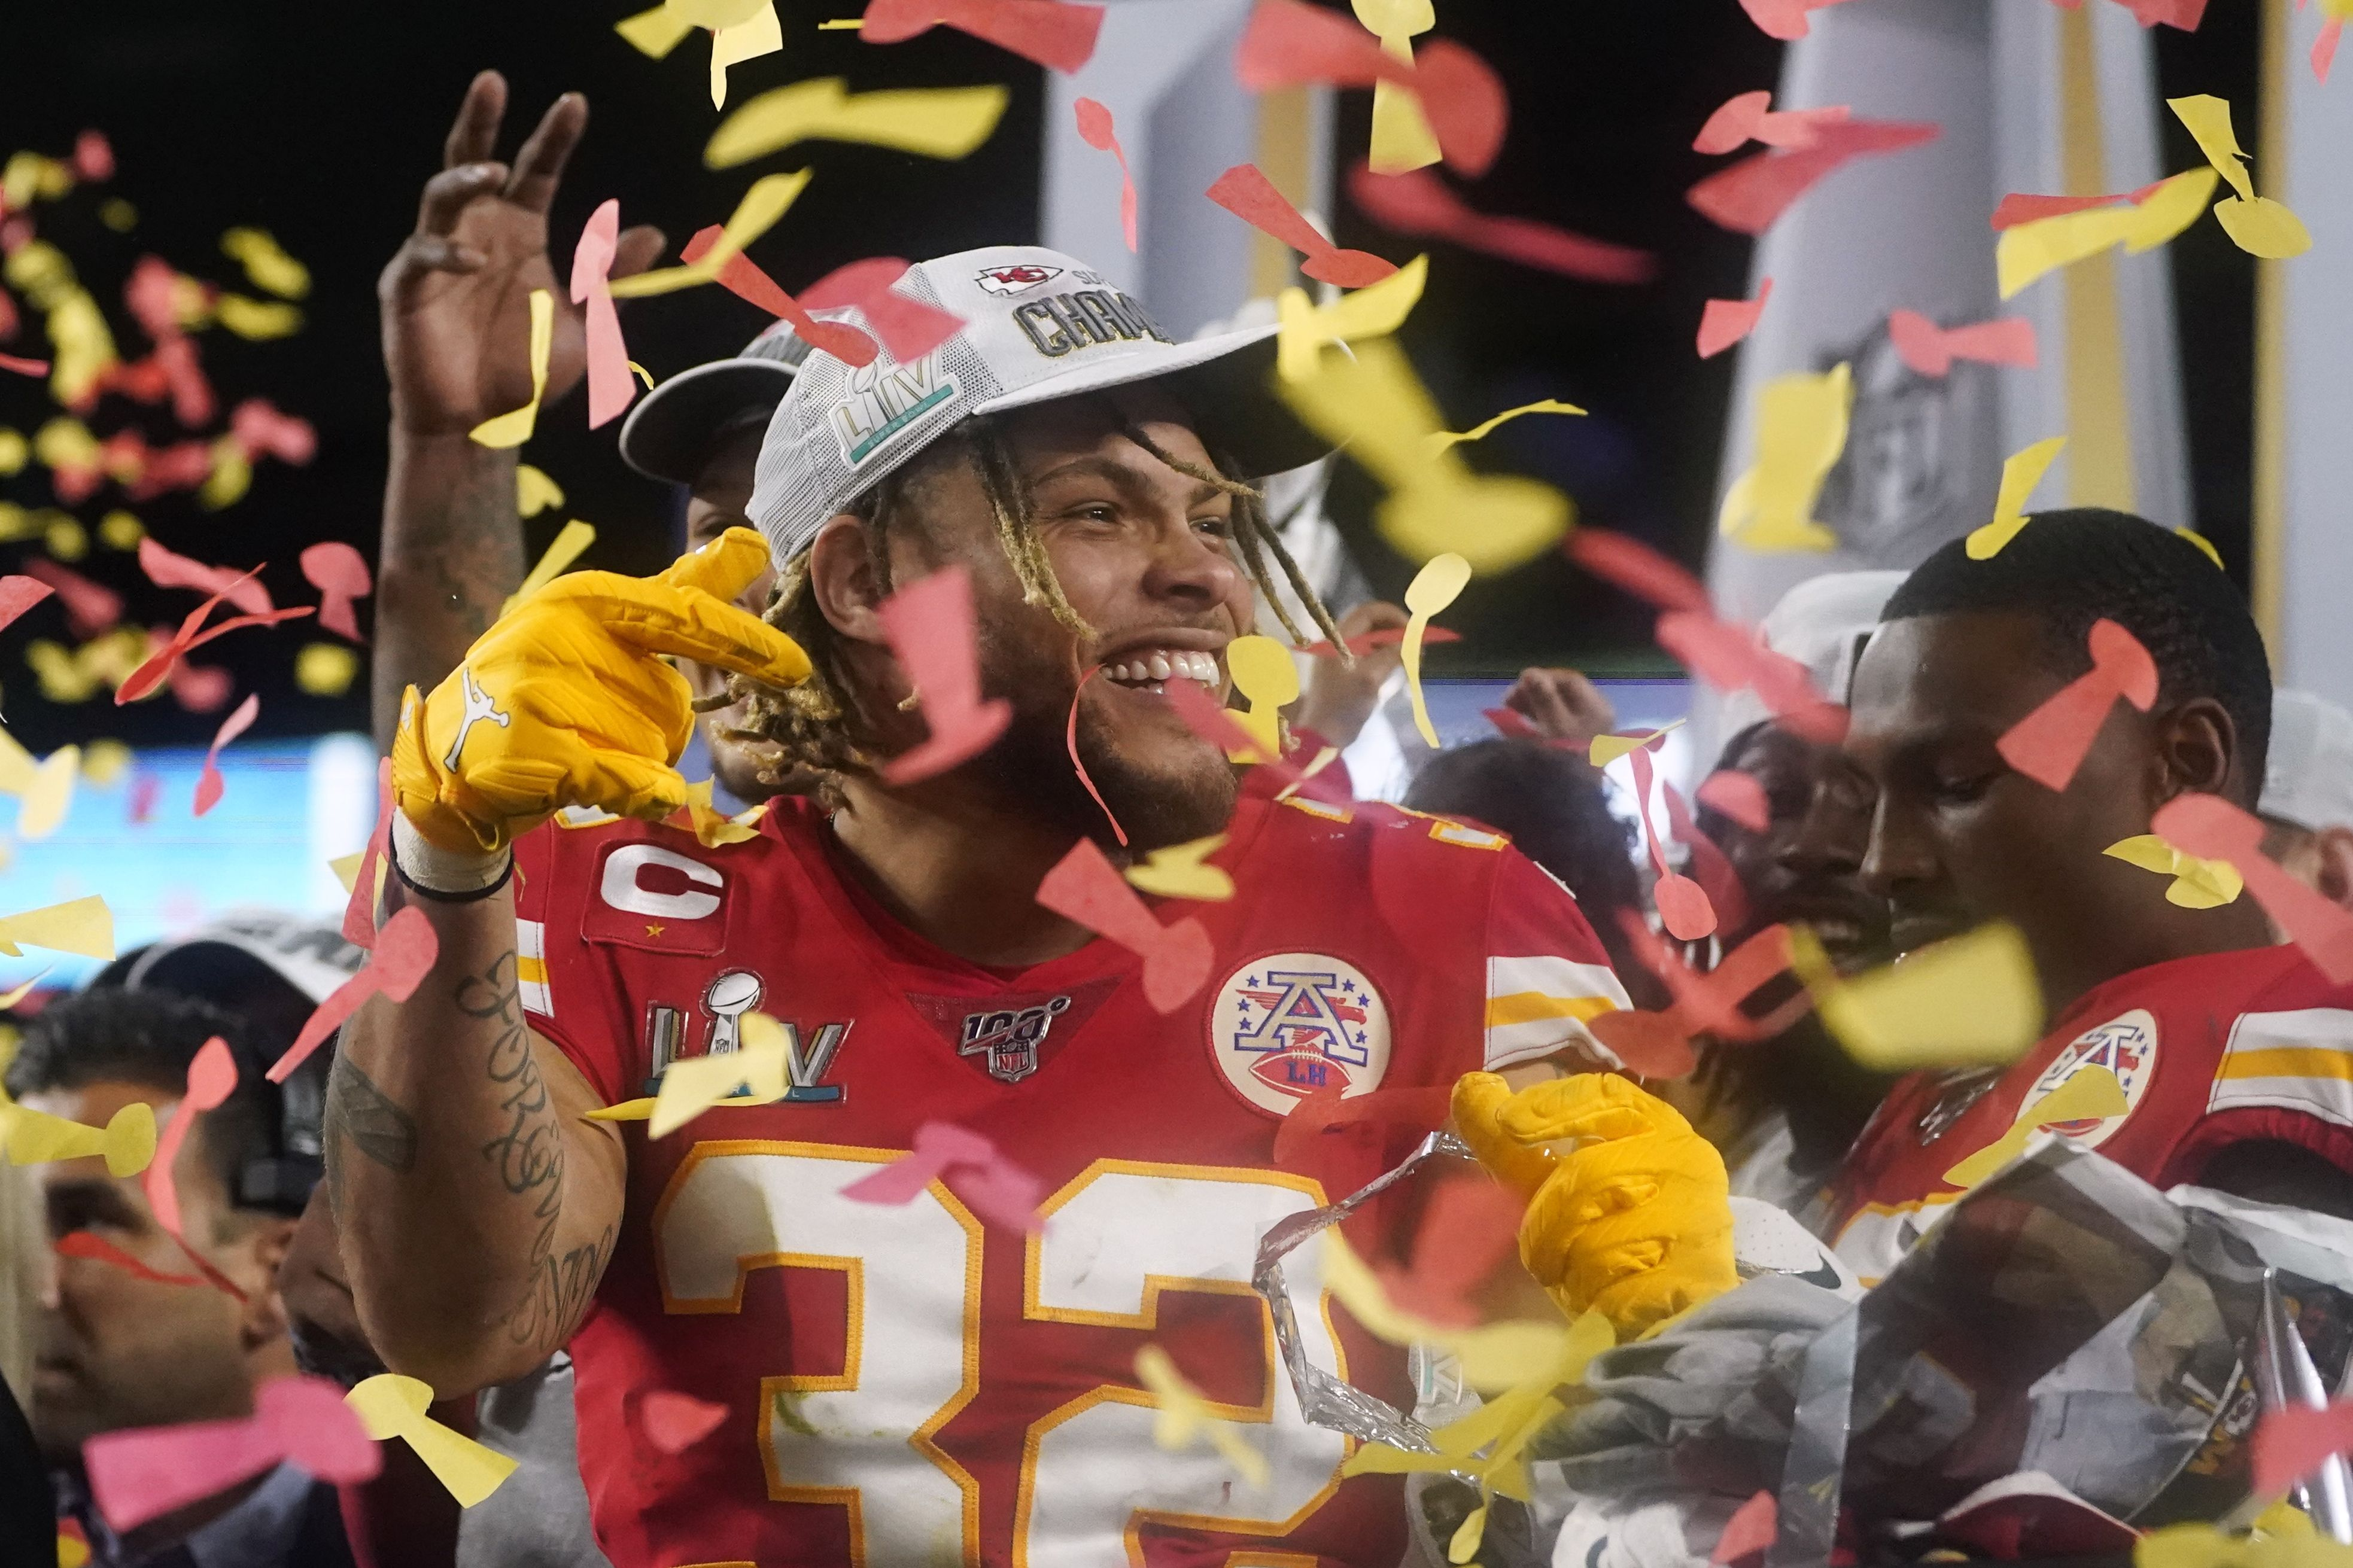 Tyrann Mathieu celebrating after winning the Super Bowl